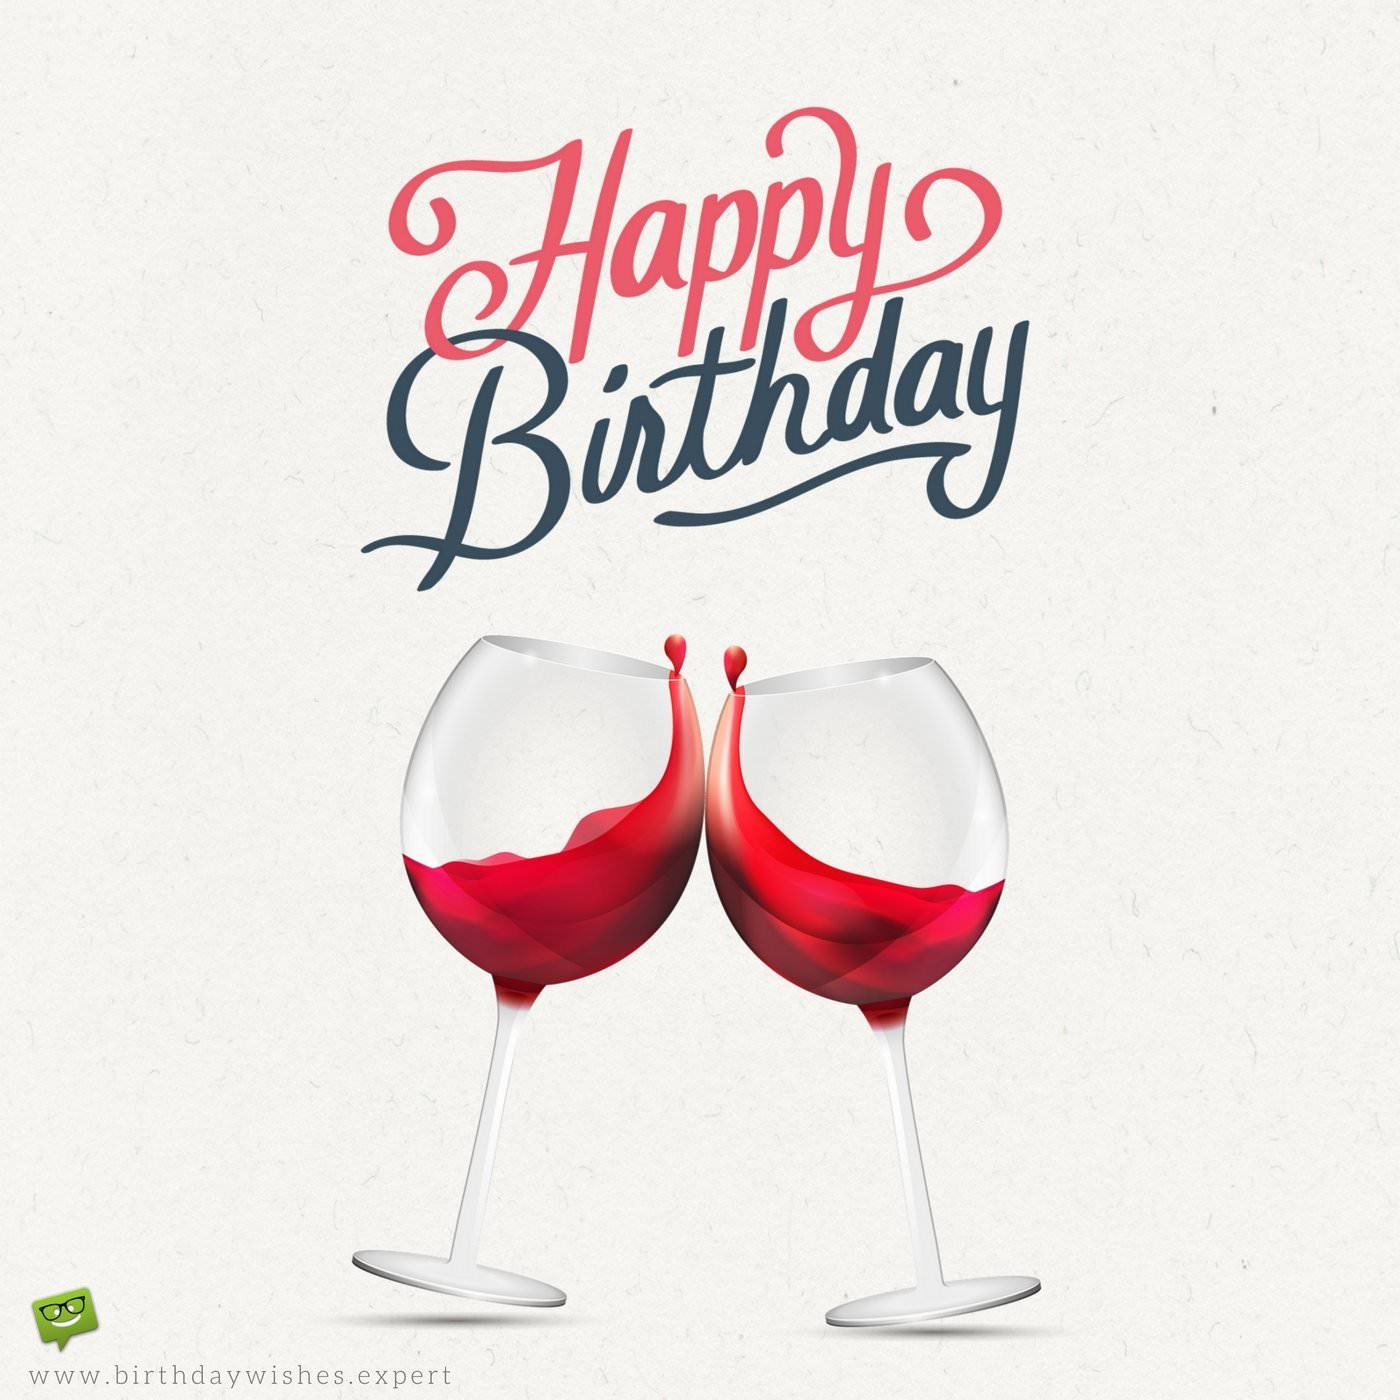 Best ideas about Wine Birthday Wishes . Save or Pin Original Birthday Quotes for your Husband Now.